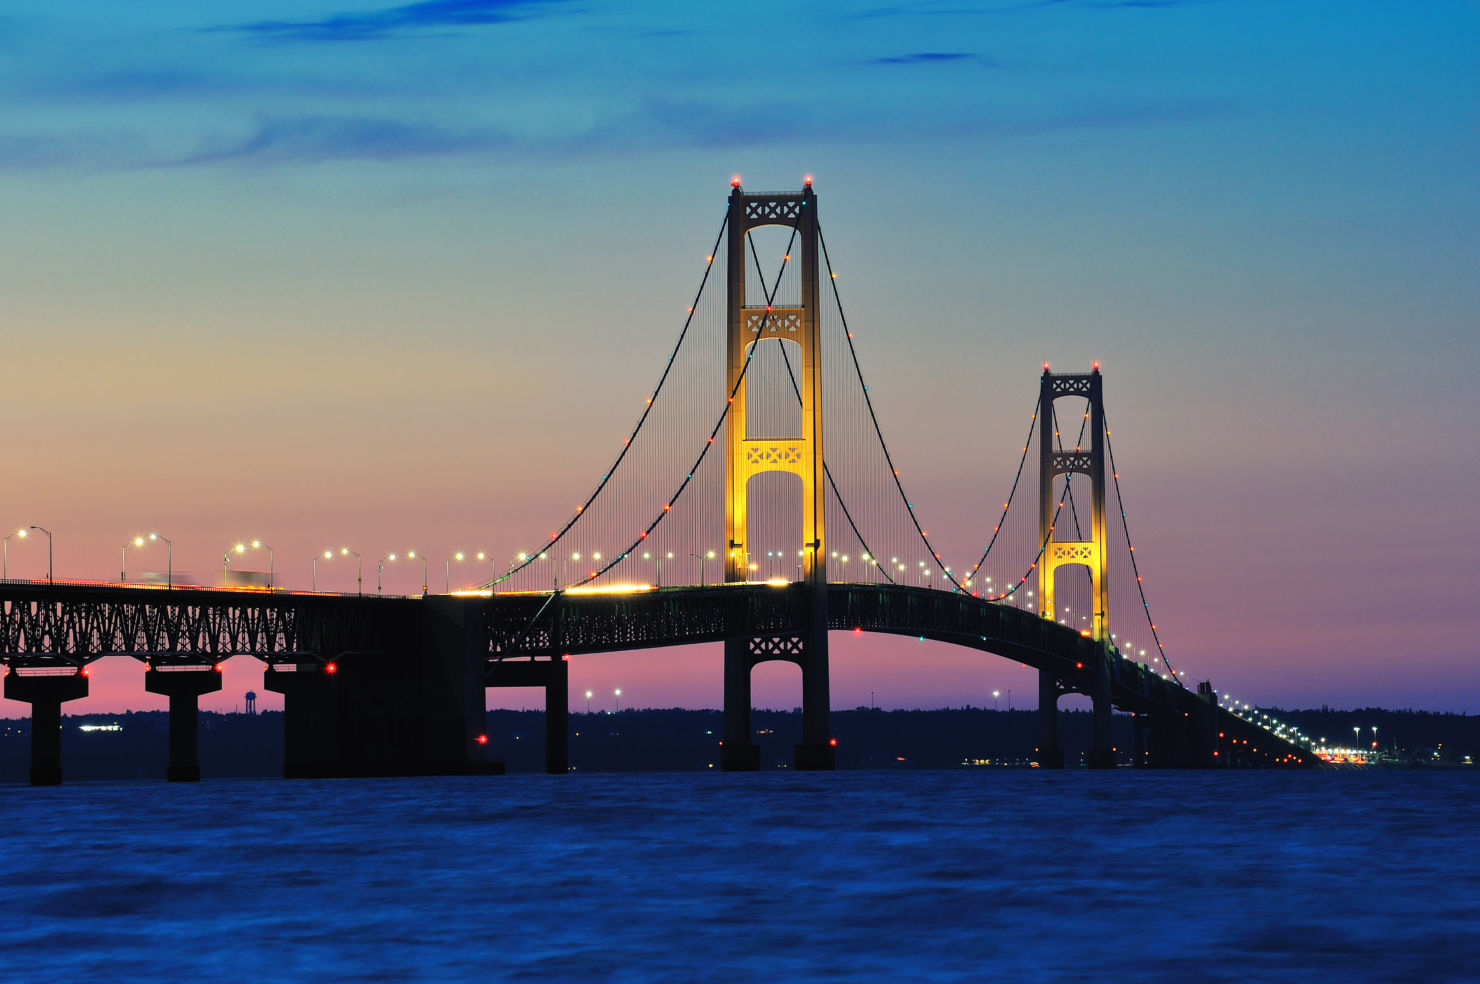 Bridge Lights, Michigan's Mackinac Bridge, Mackinaw City, Michigan